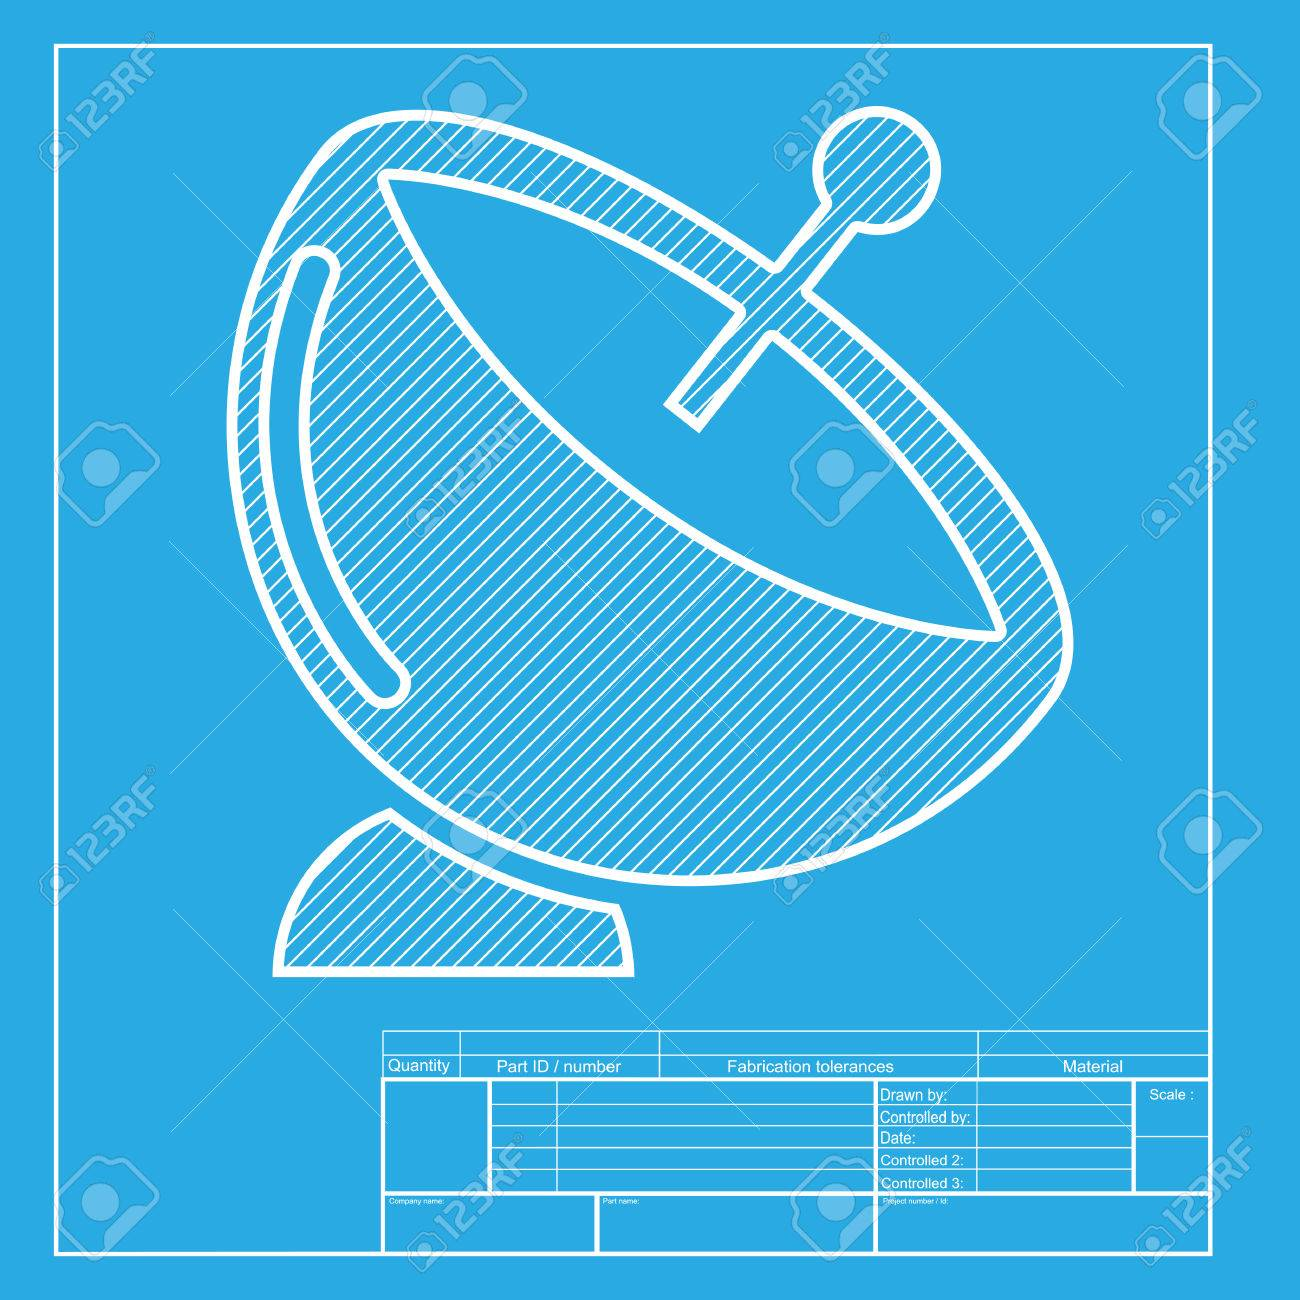 Satellite dish sign white section of icon on blueprint template white section of icon on blueprint template stock vector 58750833 malvernweather Image collections